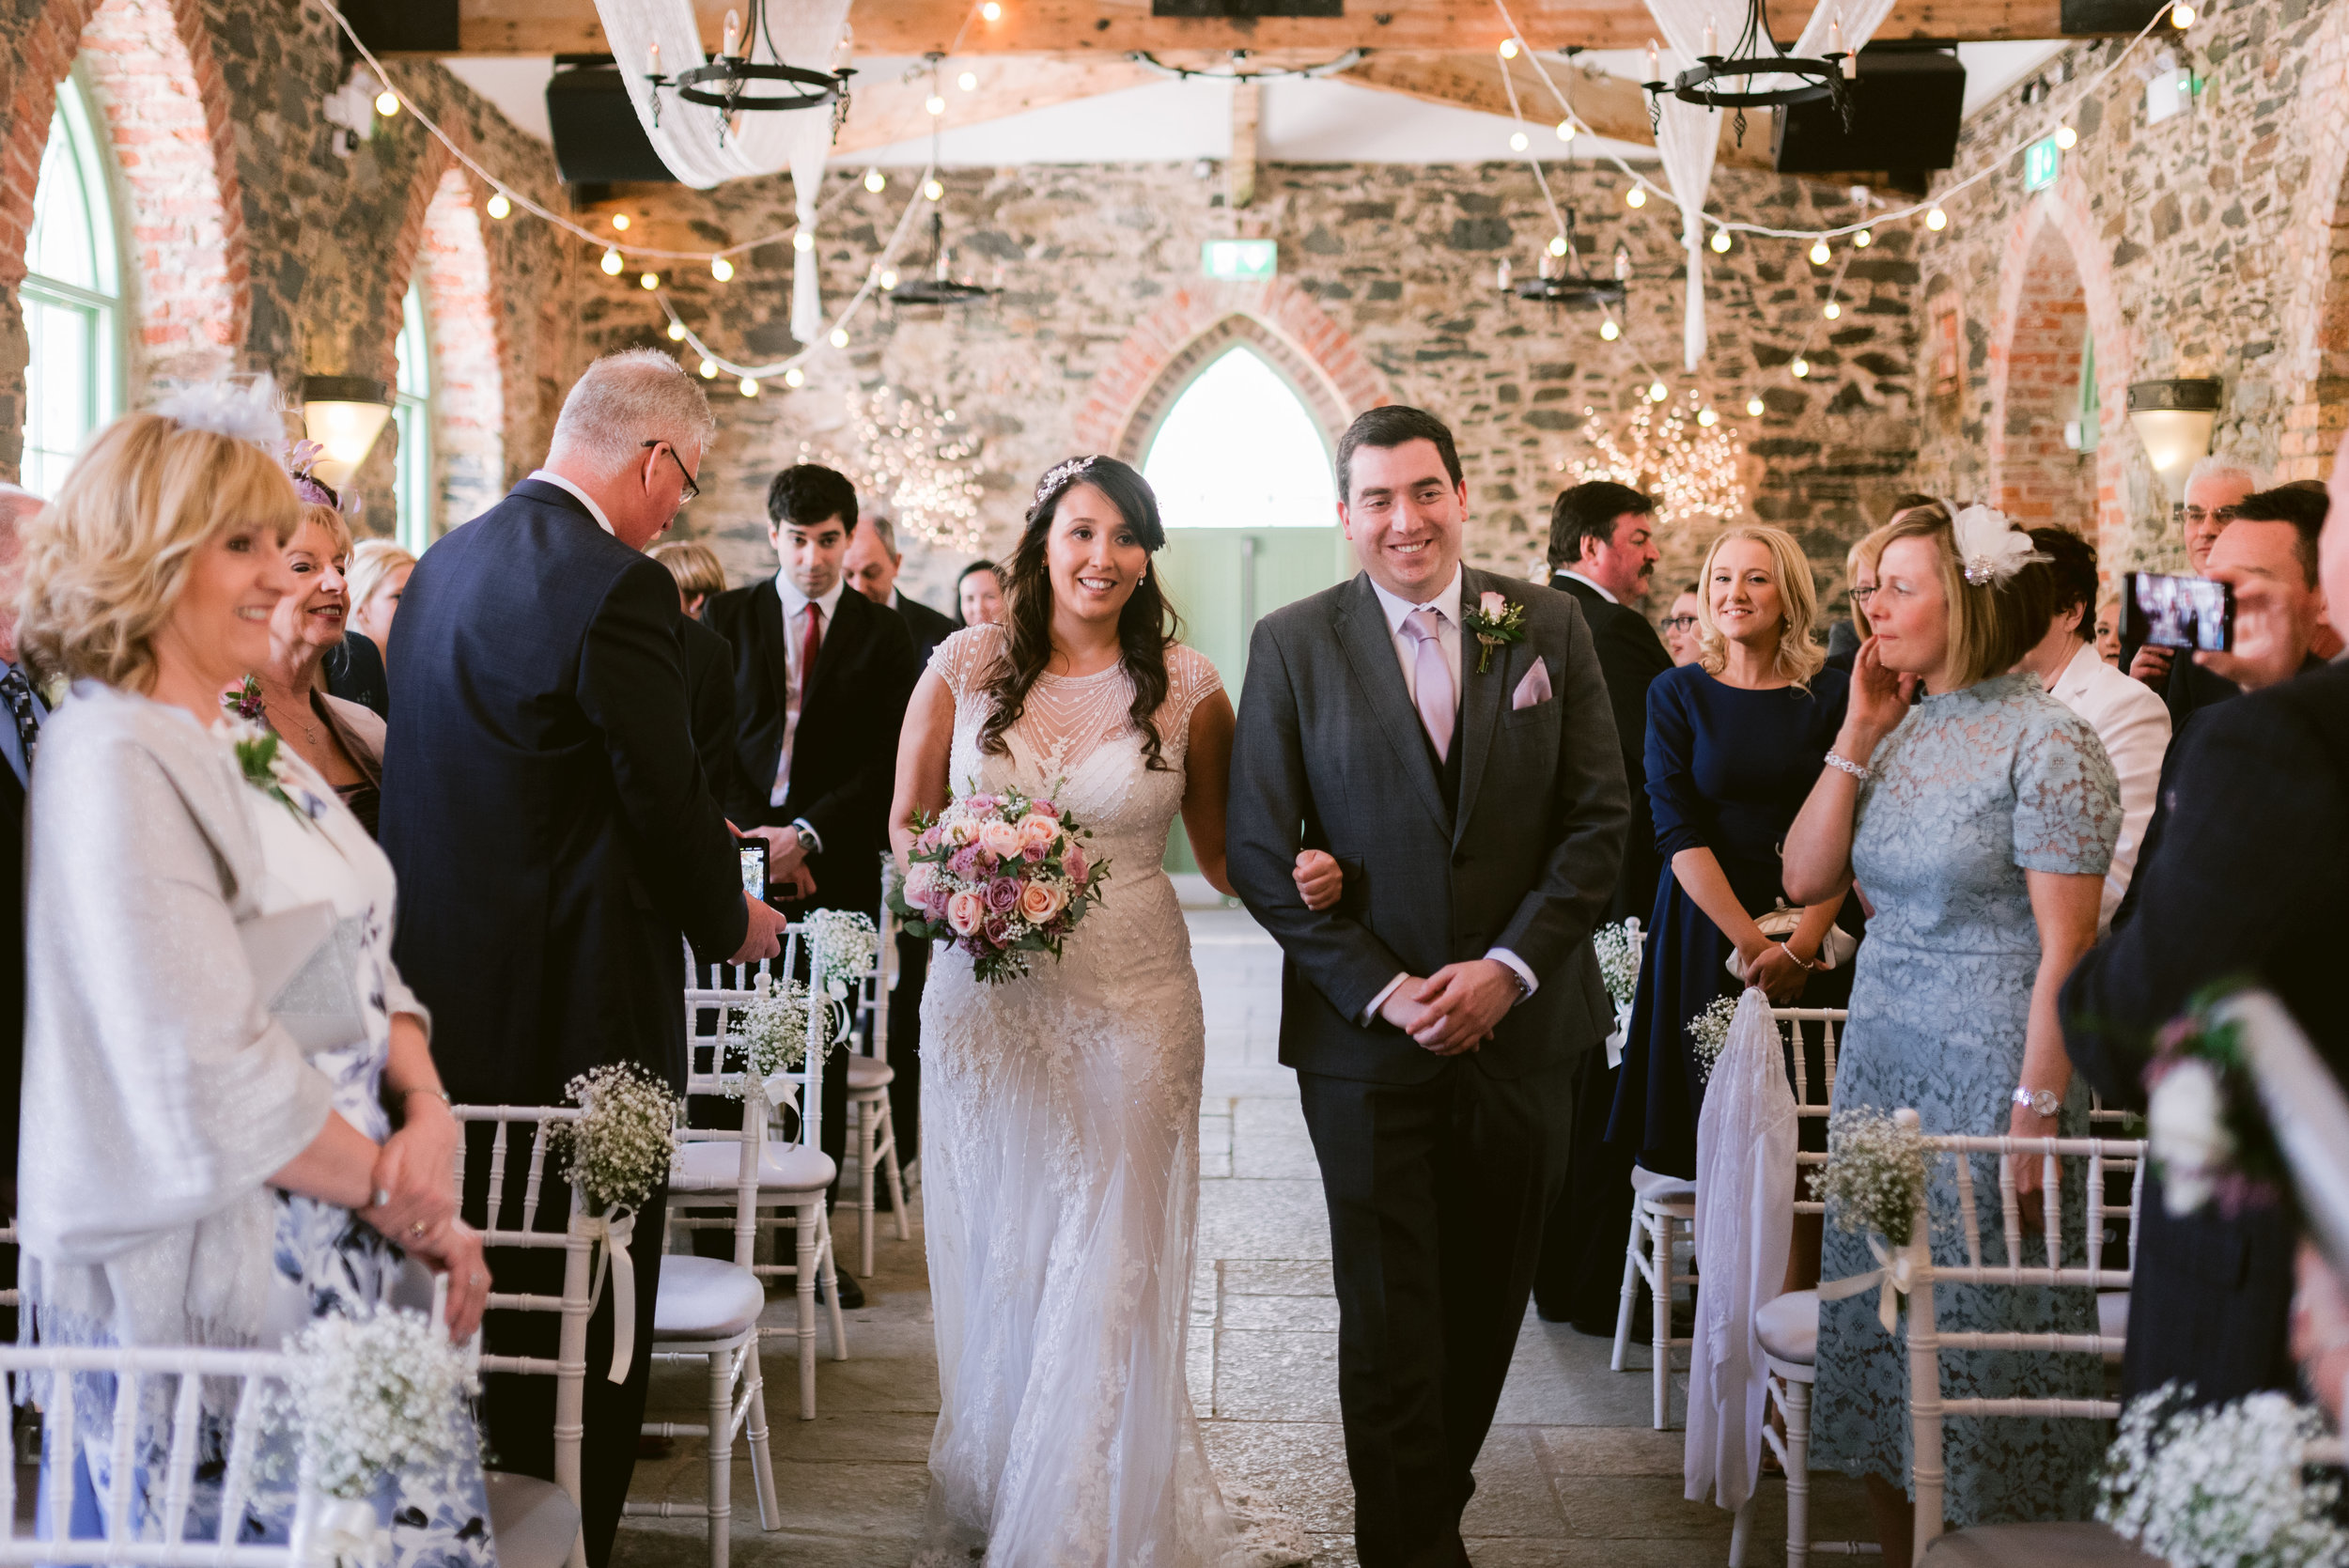 orange tree wedding, orange tree ceremony, barn wedding venue northern ireland, rustic wedding venues NI, bright wedding venues northern ireland, greyabbey wedding venue (12).jpg